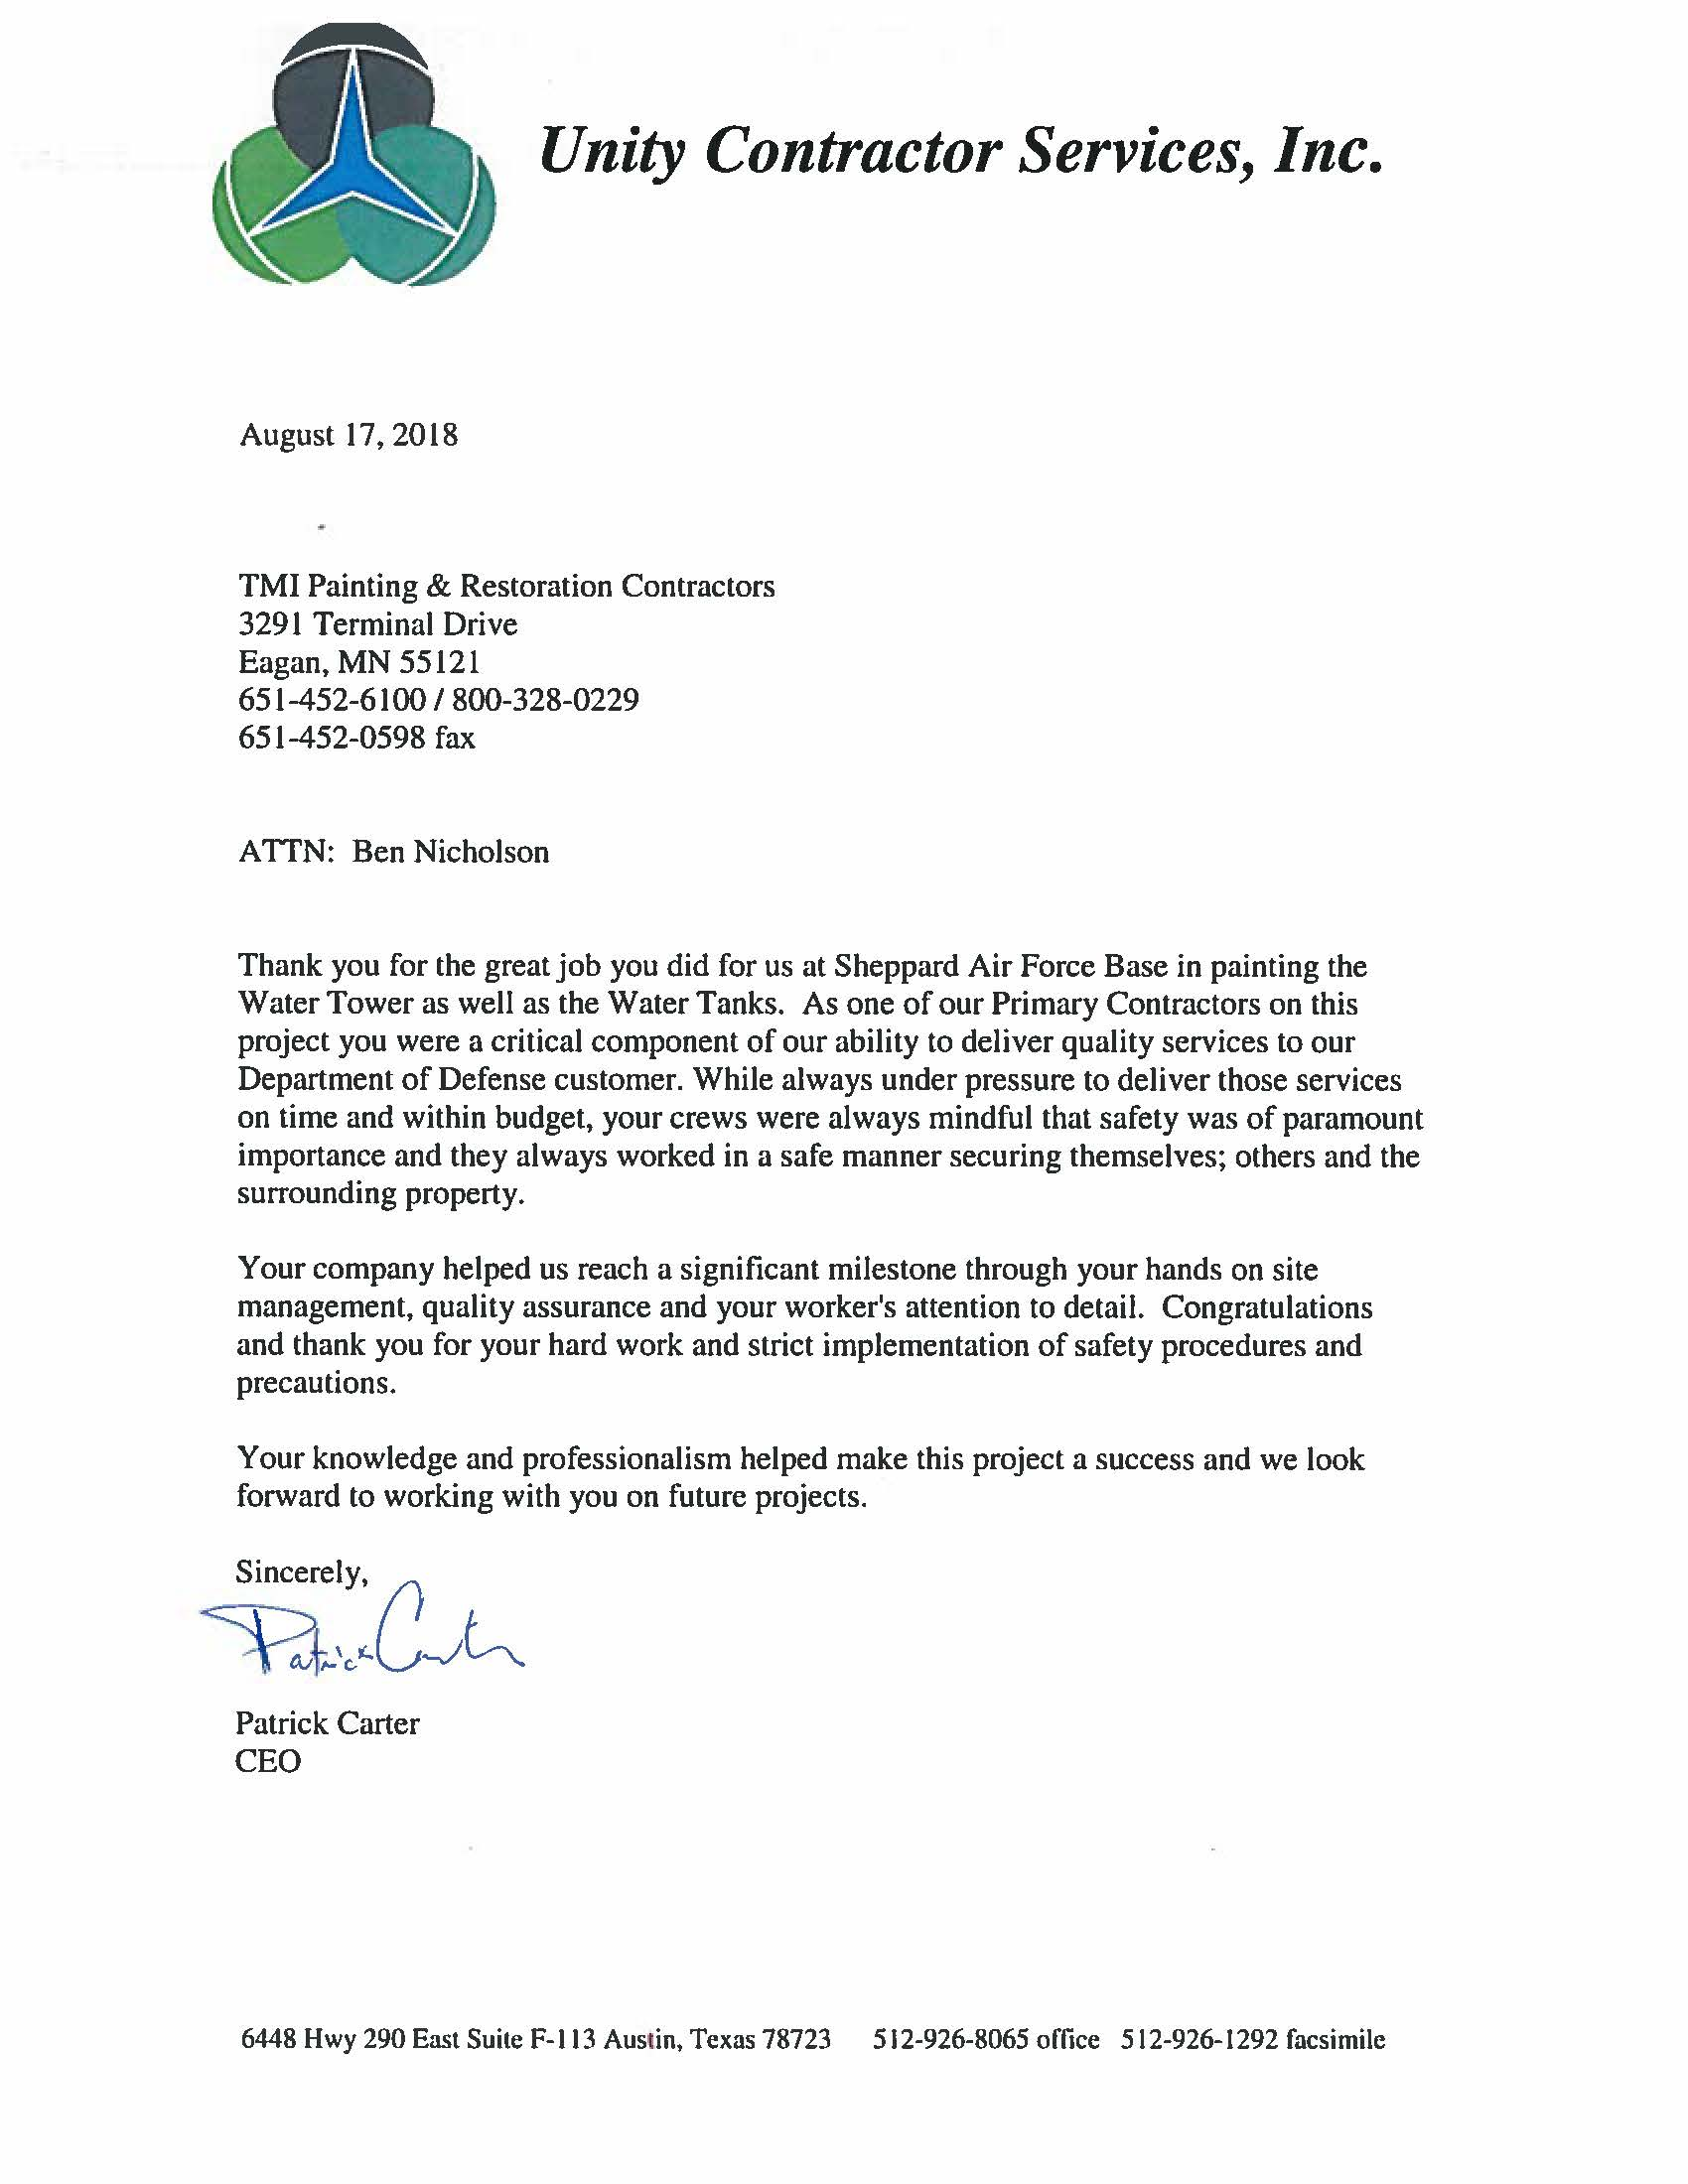 Unity personal thank you letter to excellent job from TMI Coatings.